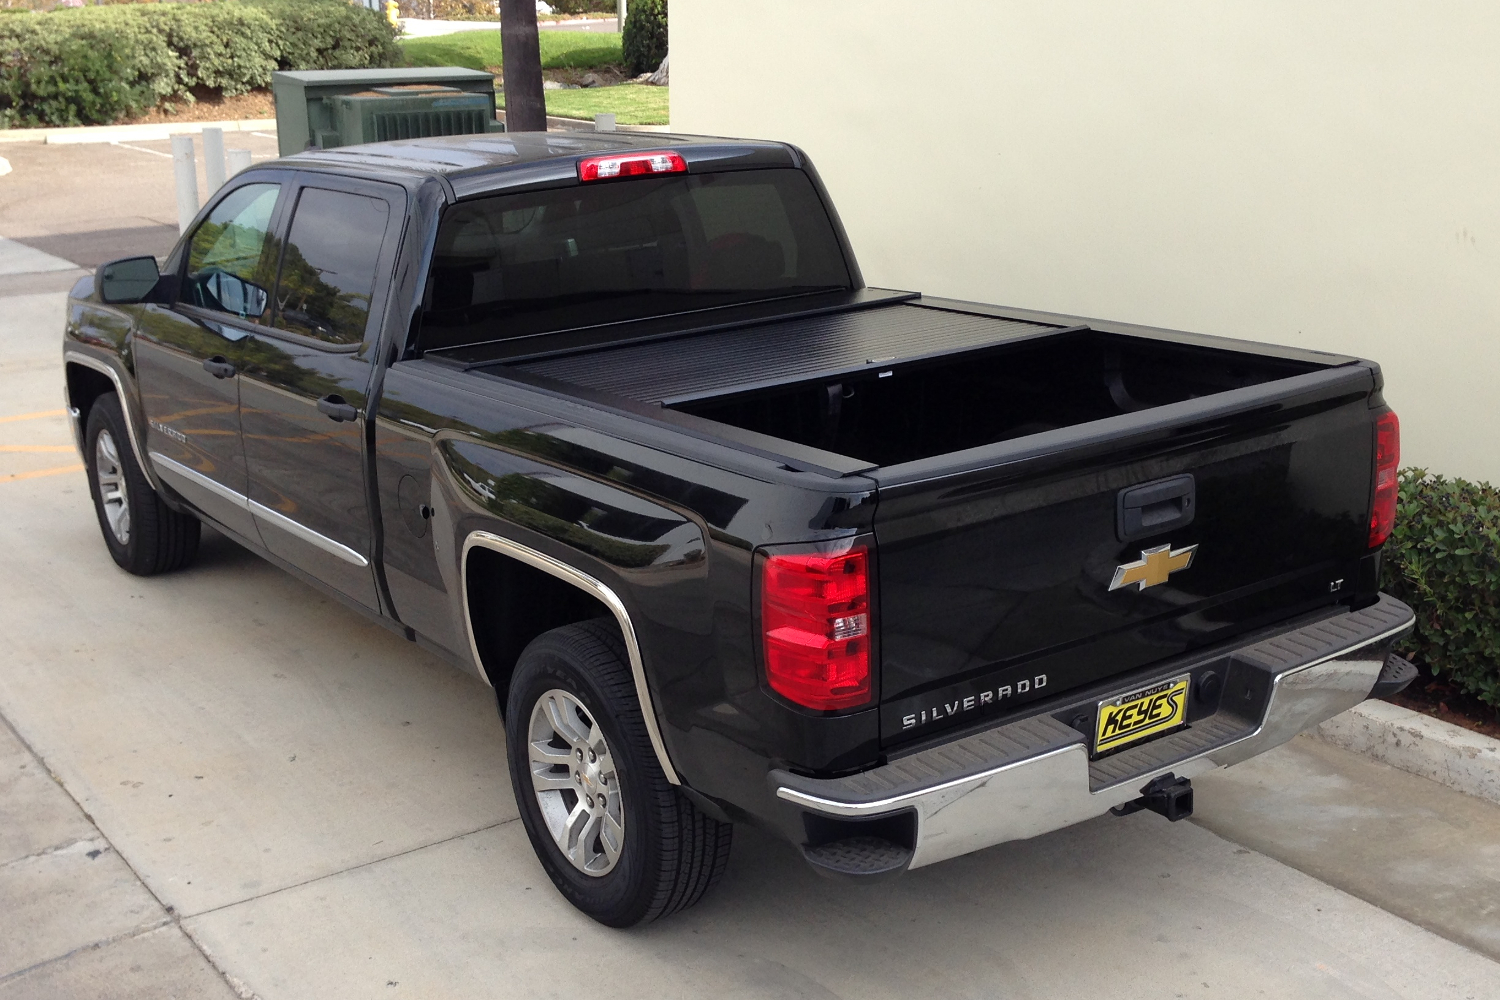 truck covers usa american roll cover TruckCovers USA Truck Cover truck covers usa truck cover